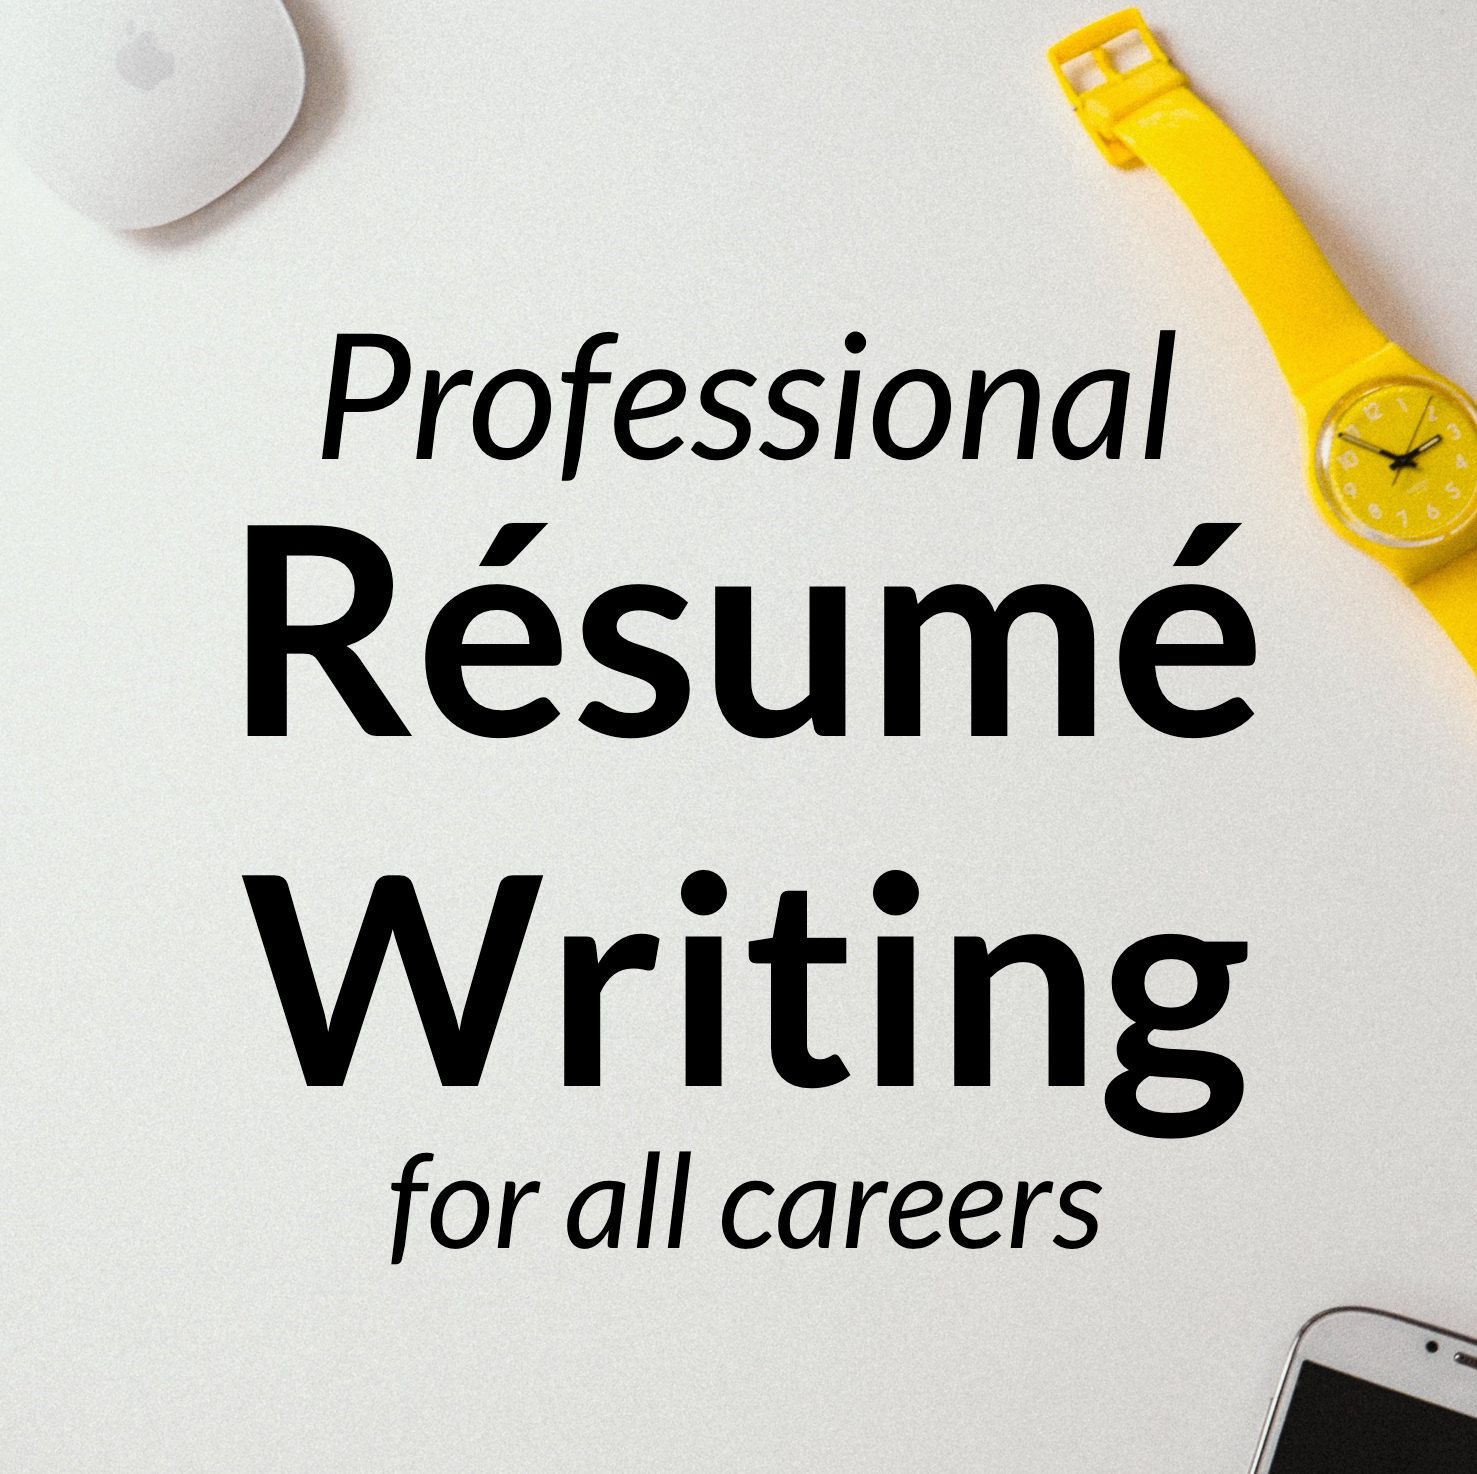 Resume Writing Template Free Resume Writing Service Resume Assistance Job Services .